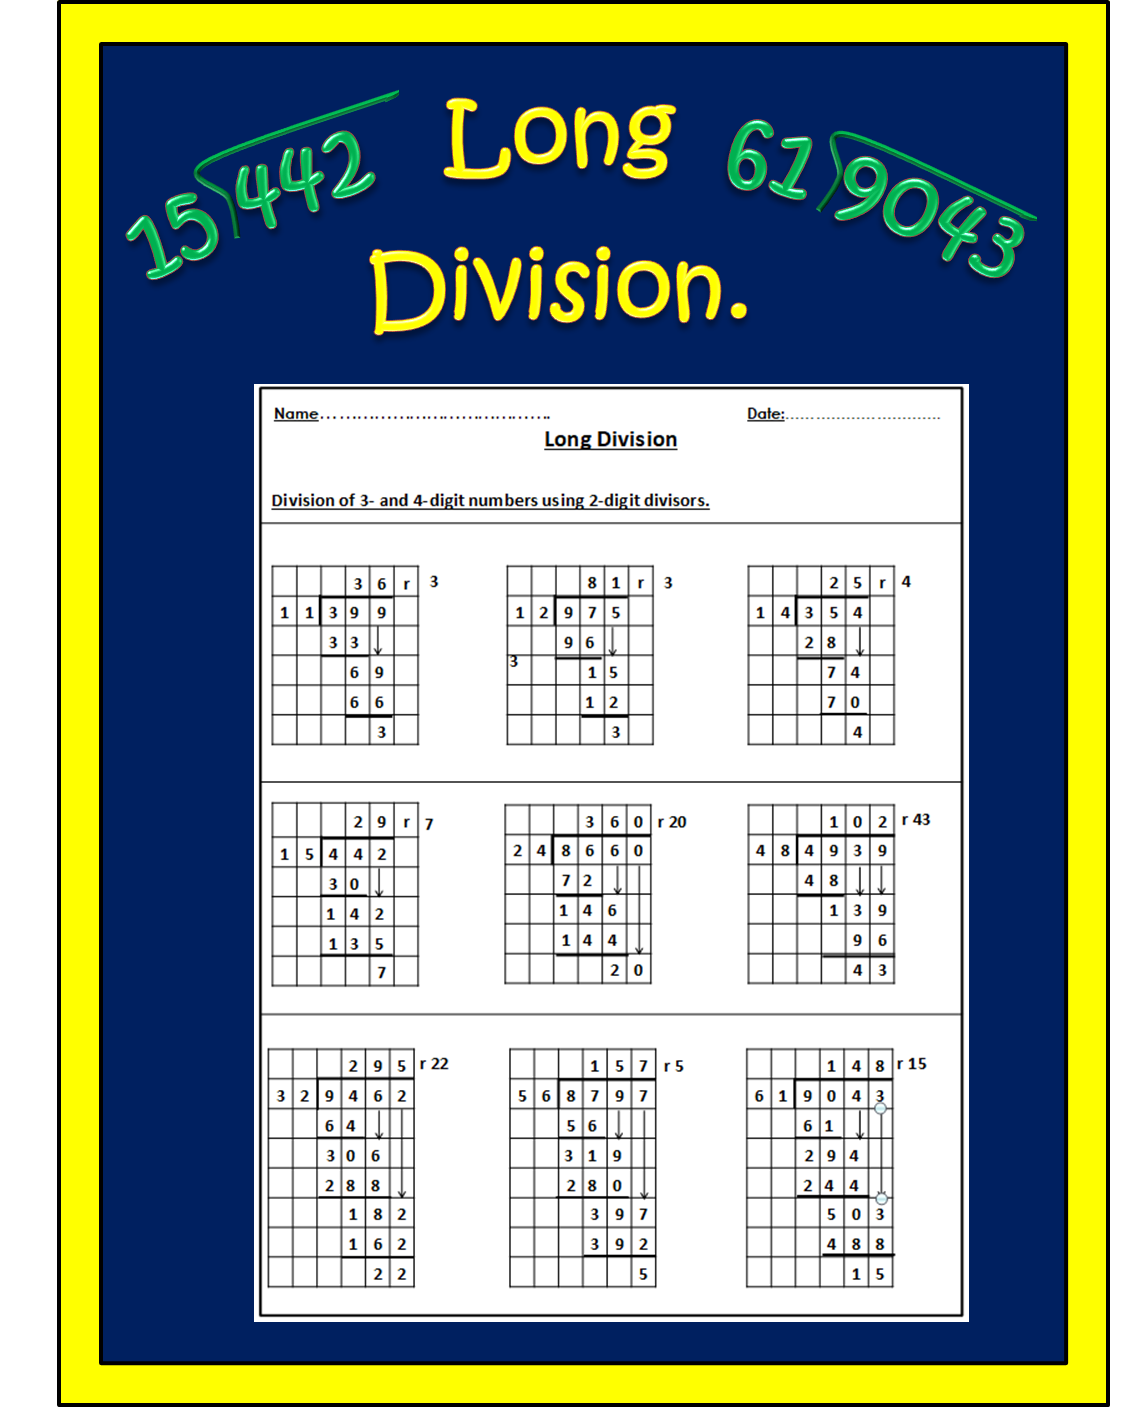 Long Division Image By All Things Maths On Maths